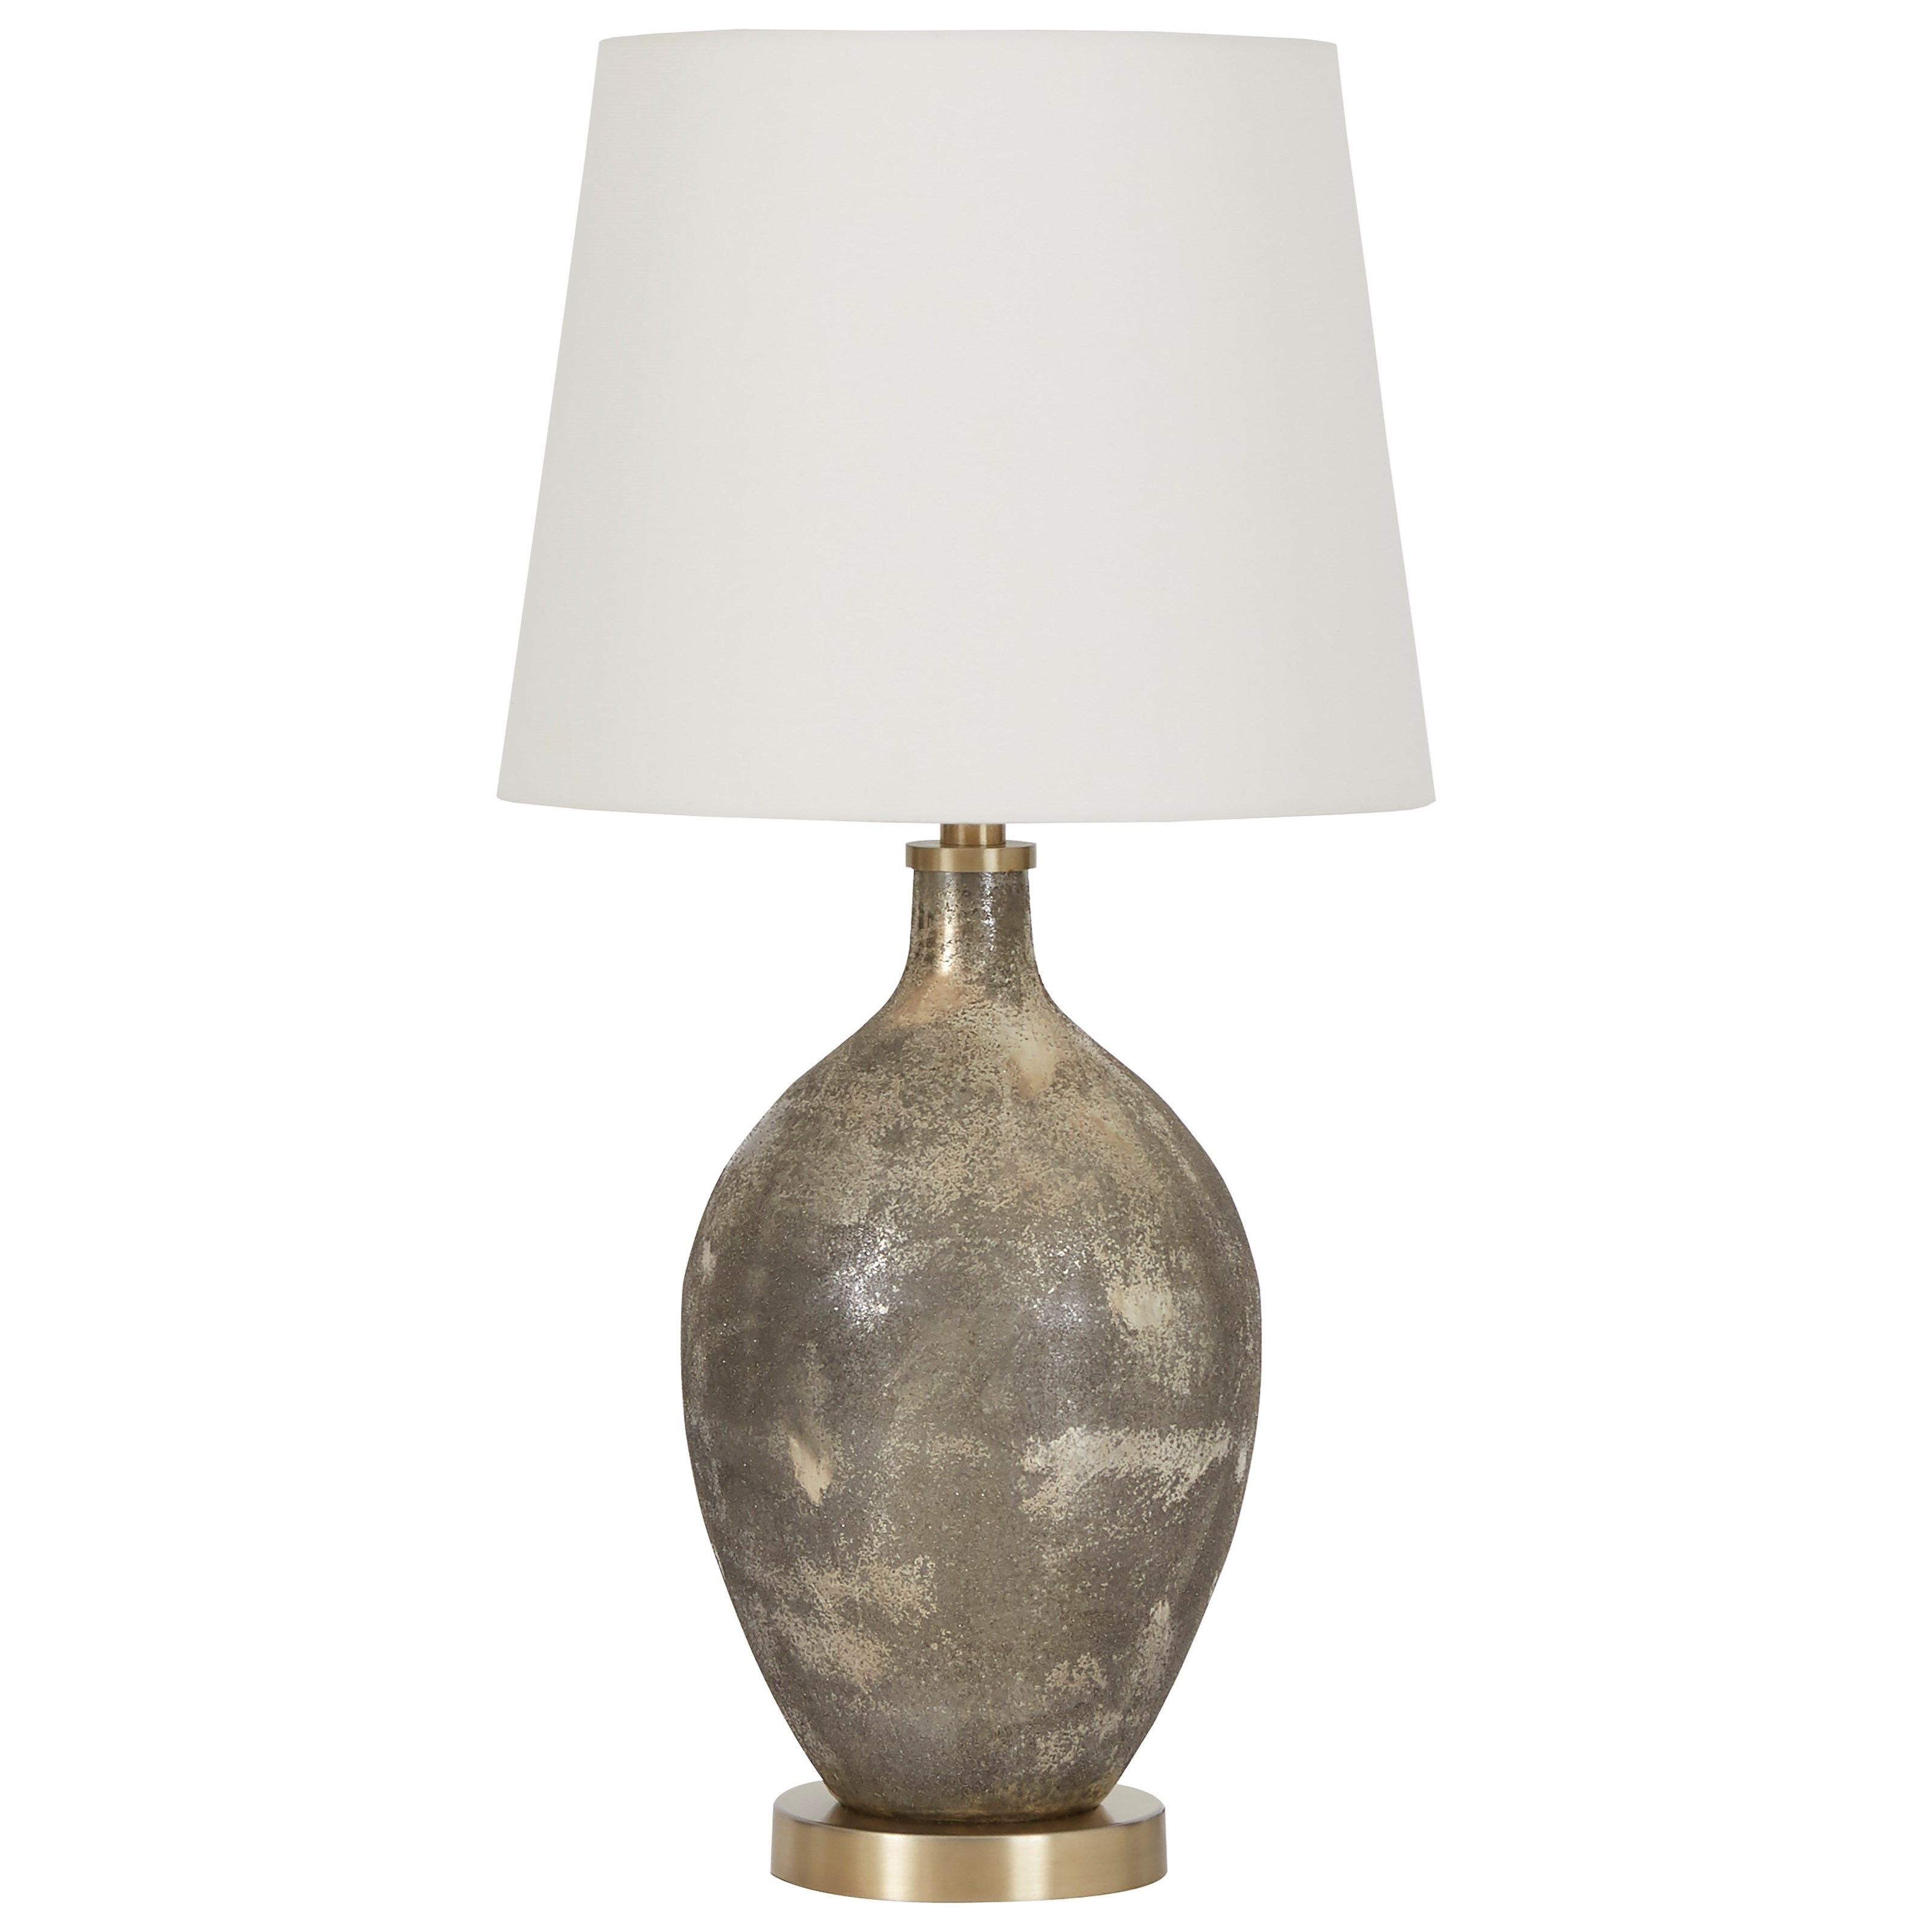 Lamps - Contemporary Jemarie Gray/Gold Finish Glass Table Lamp by Ashley (Signature Design) at Johnny Janosik